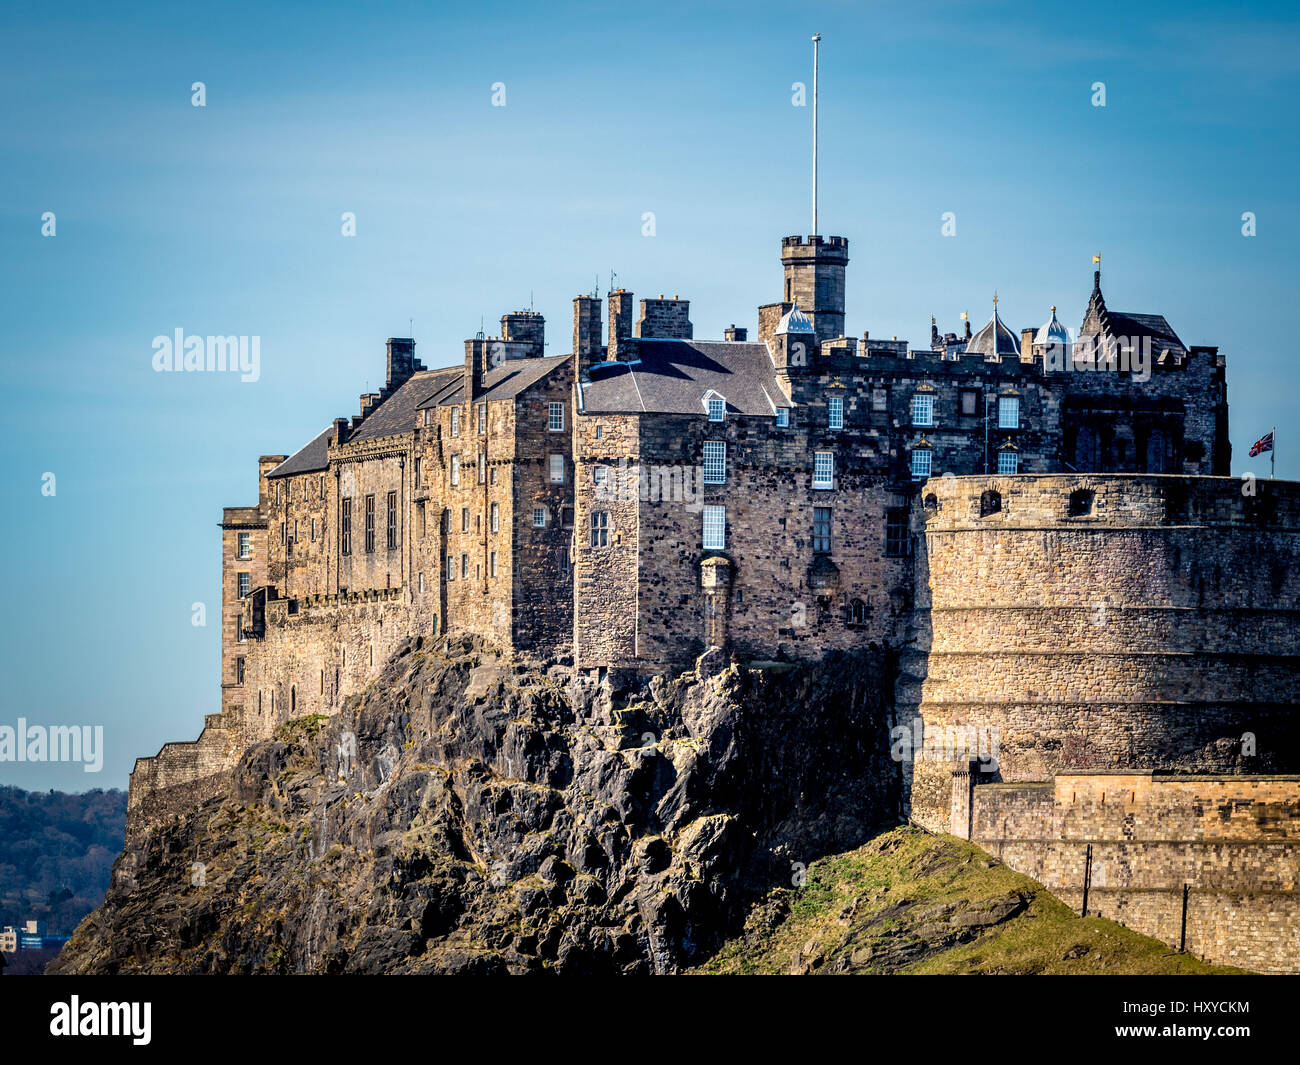 Edinburgh Castle, Edinburgh, Scotland, UK. Stock Photo